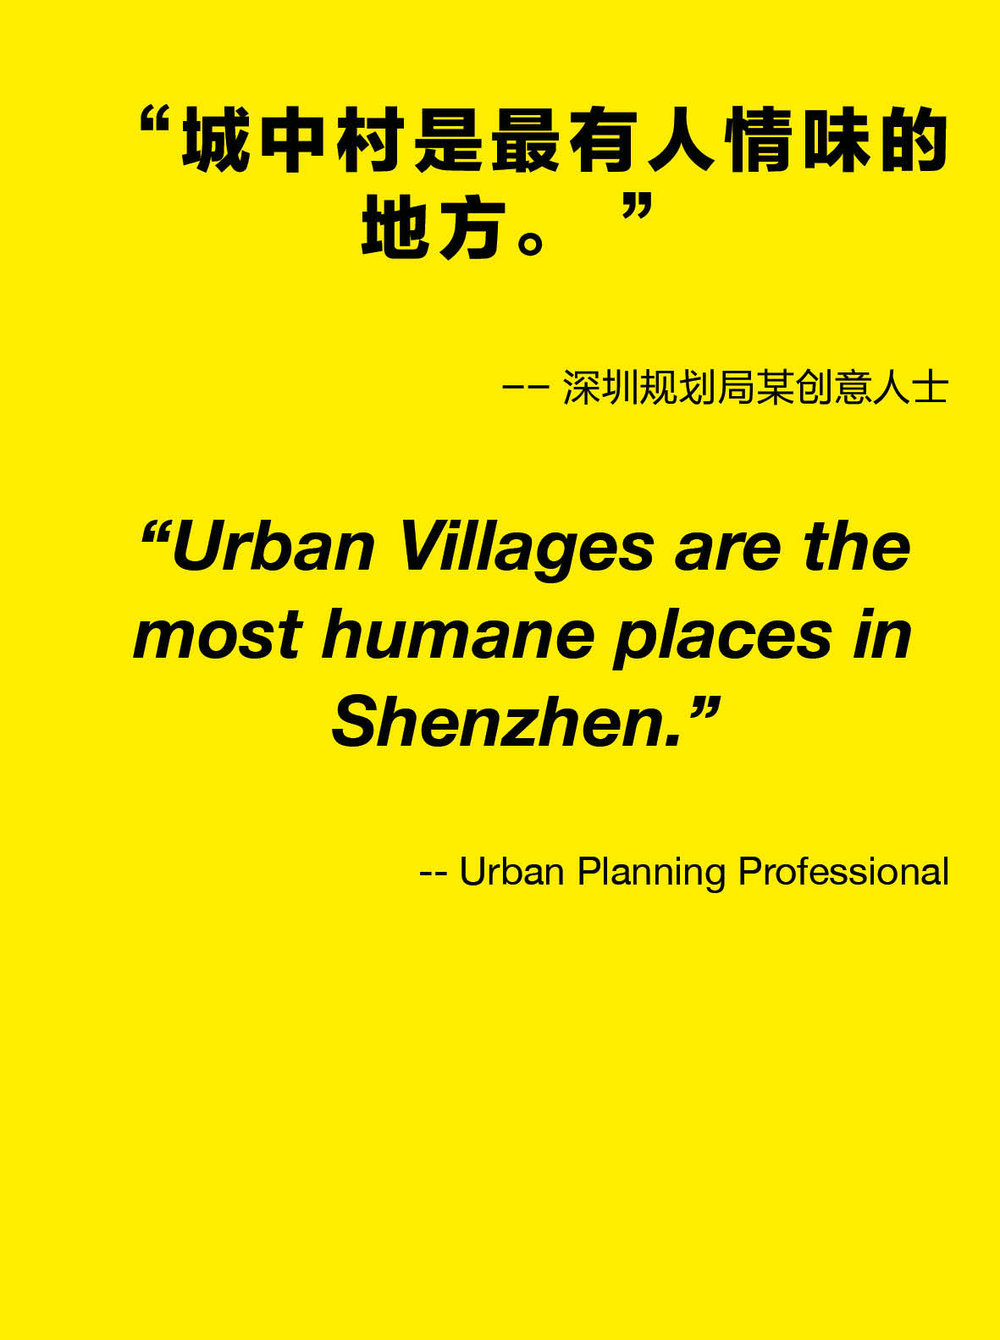 20180106_Shangsha Quotes test0323.jpg